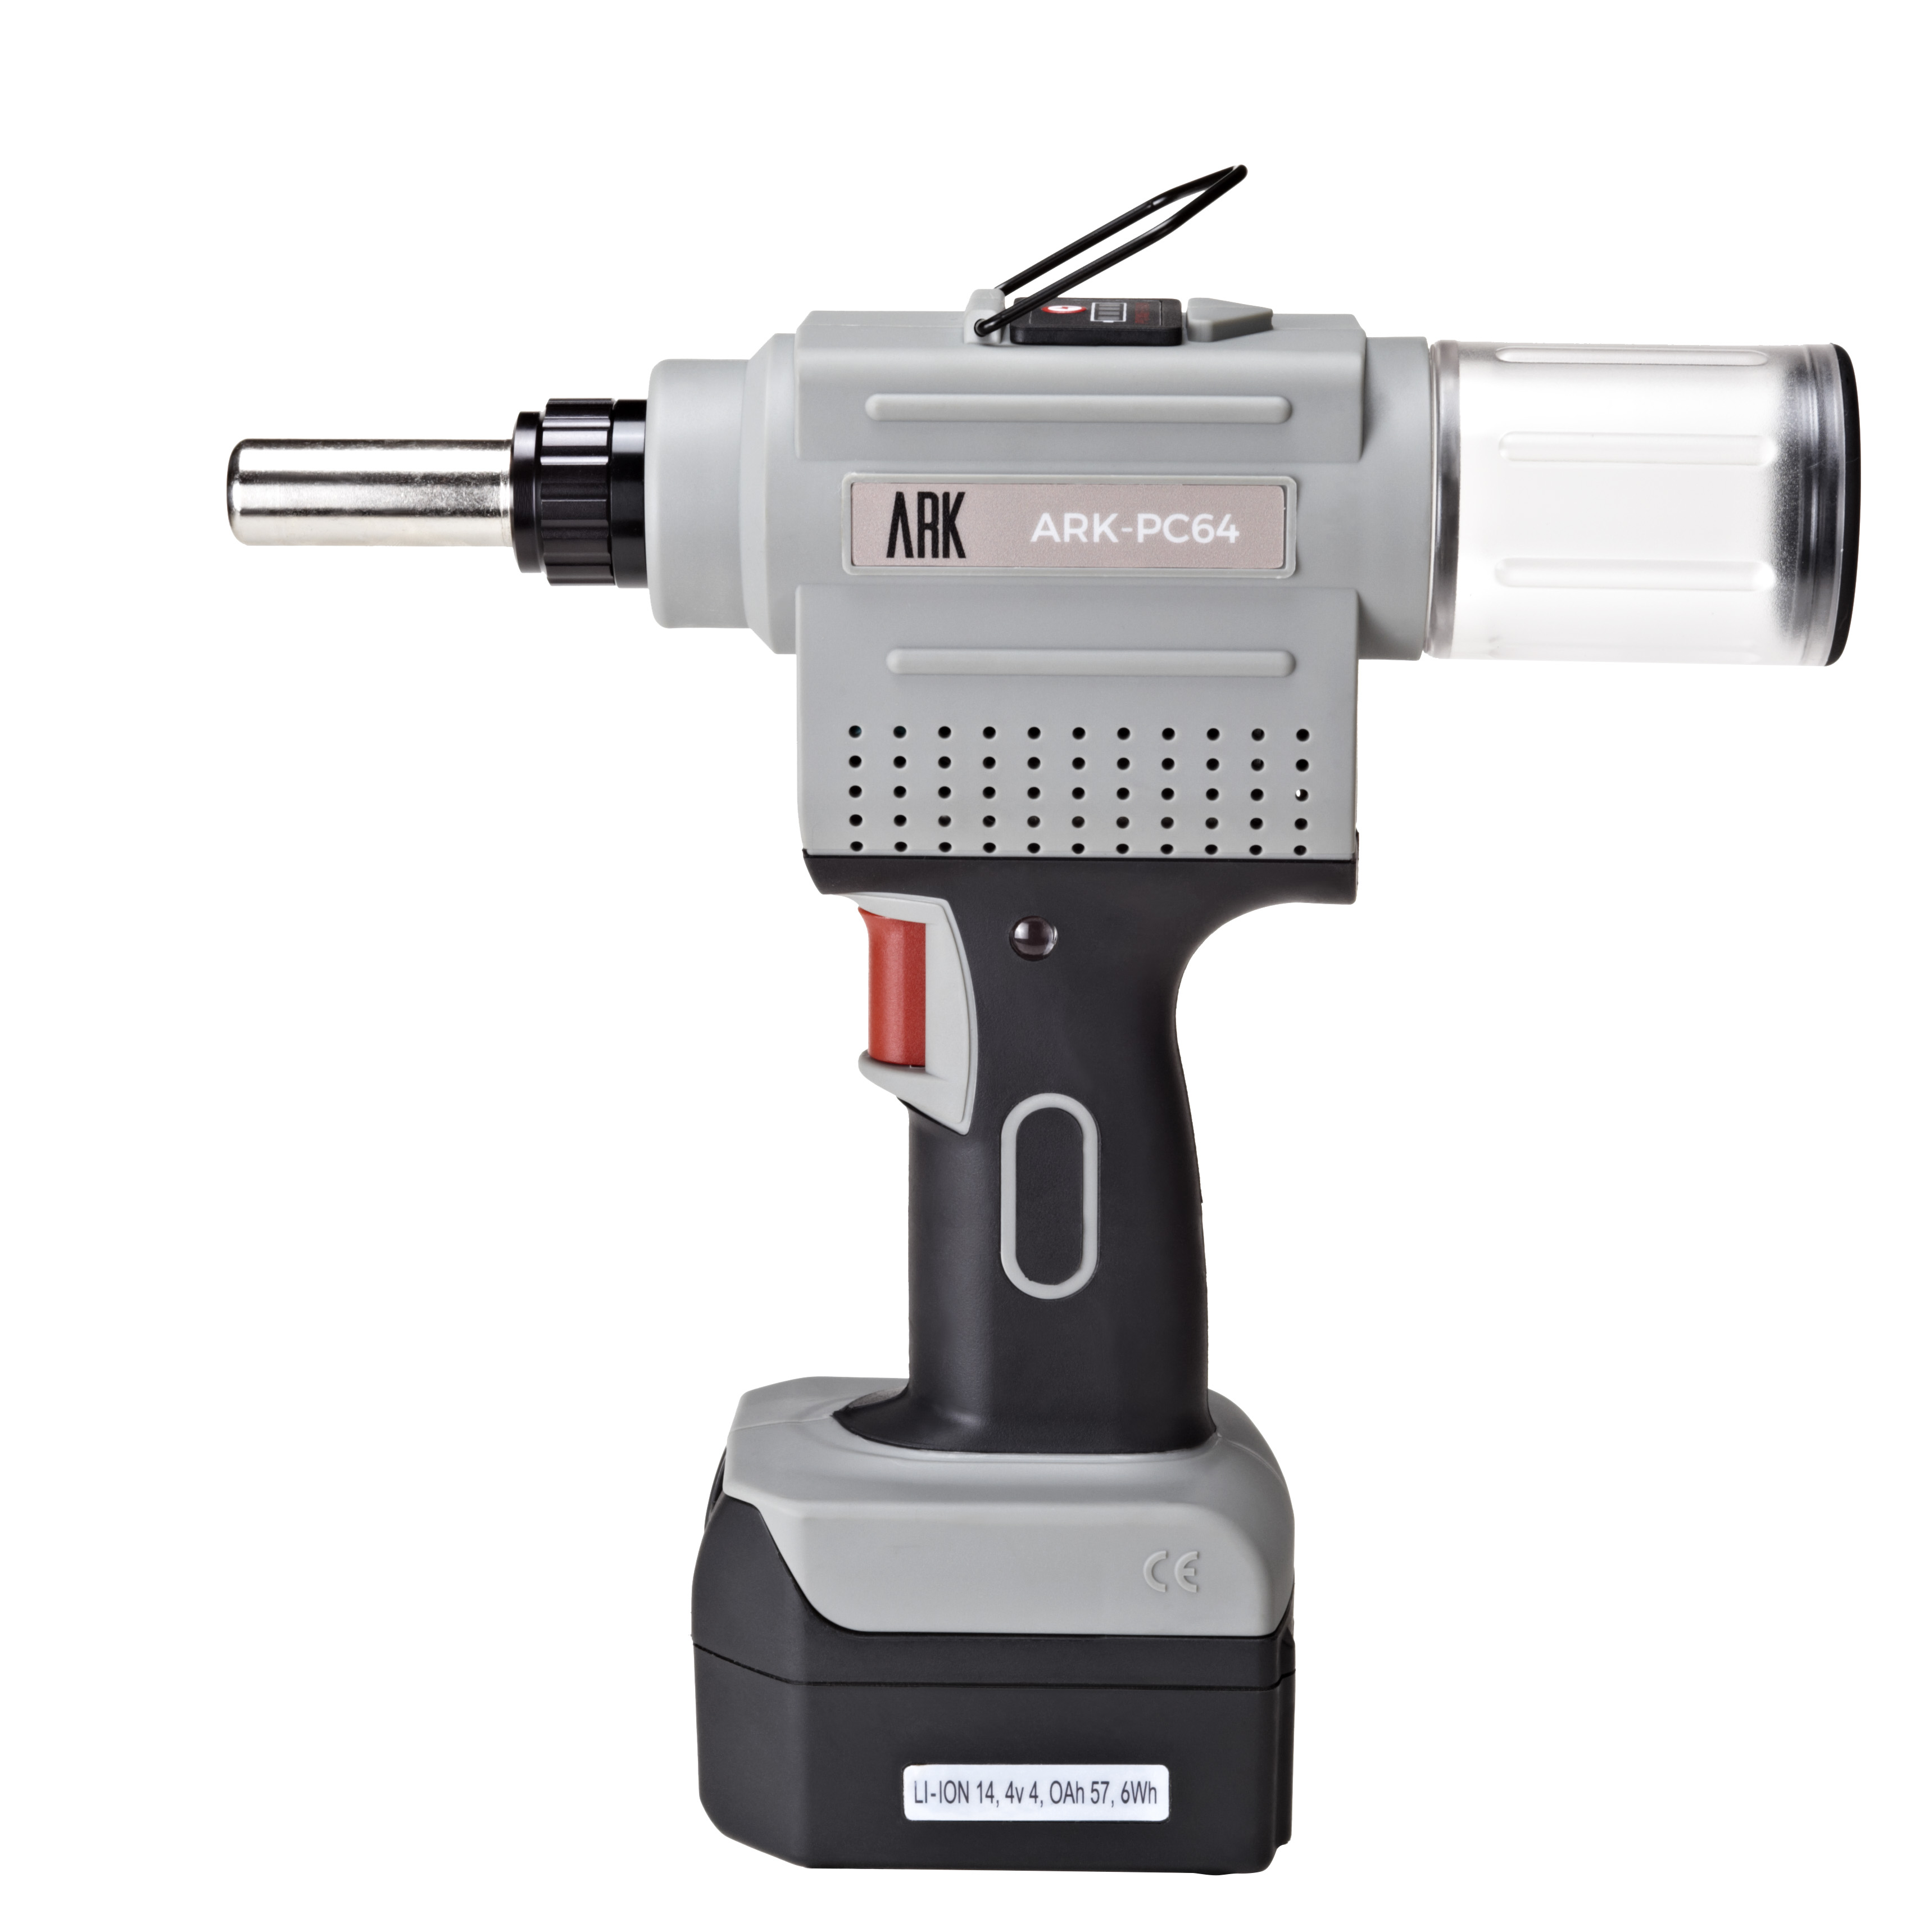 ARK - PC64 Battery Powered  Structural Riveting Tool